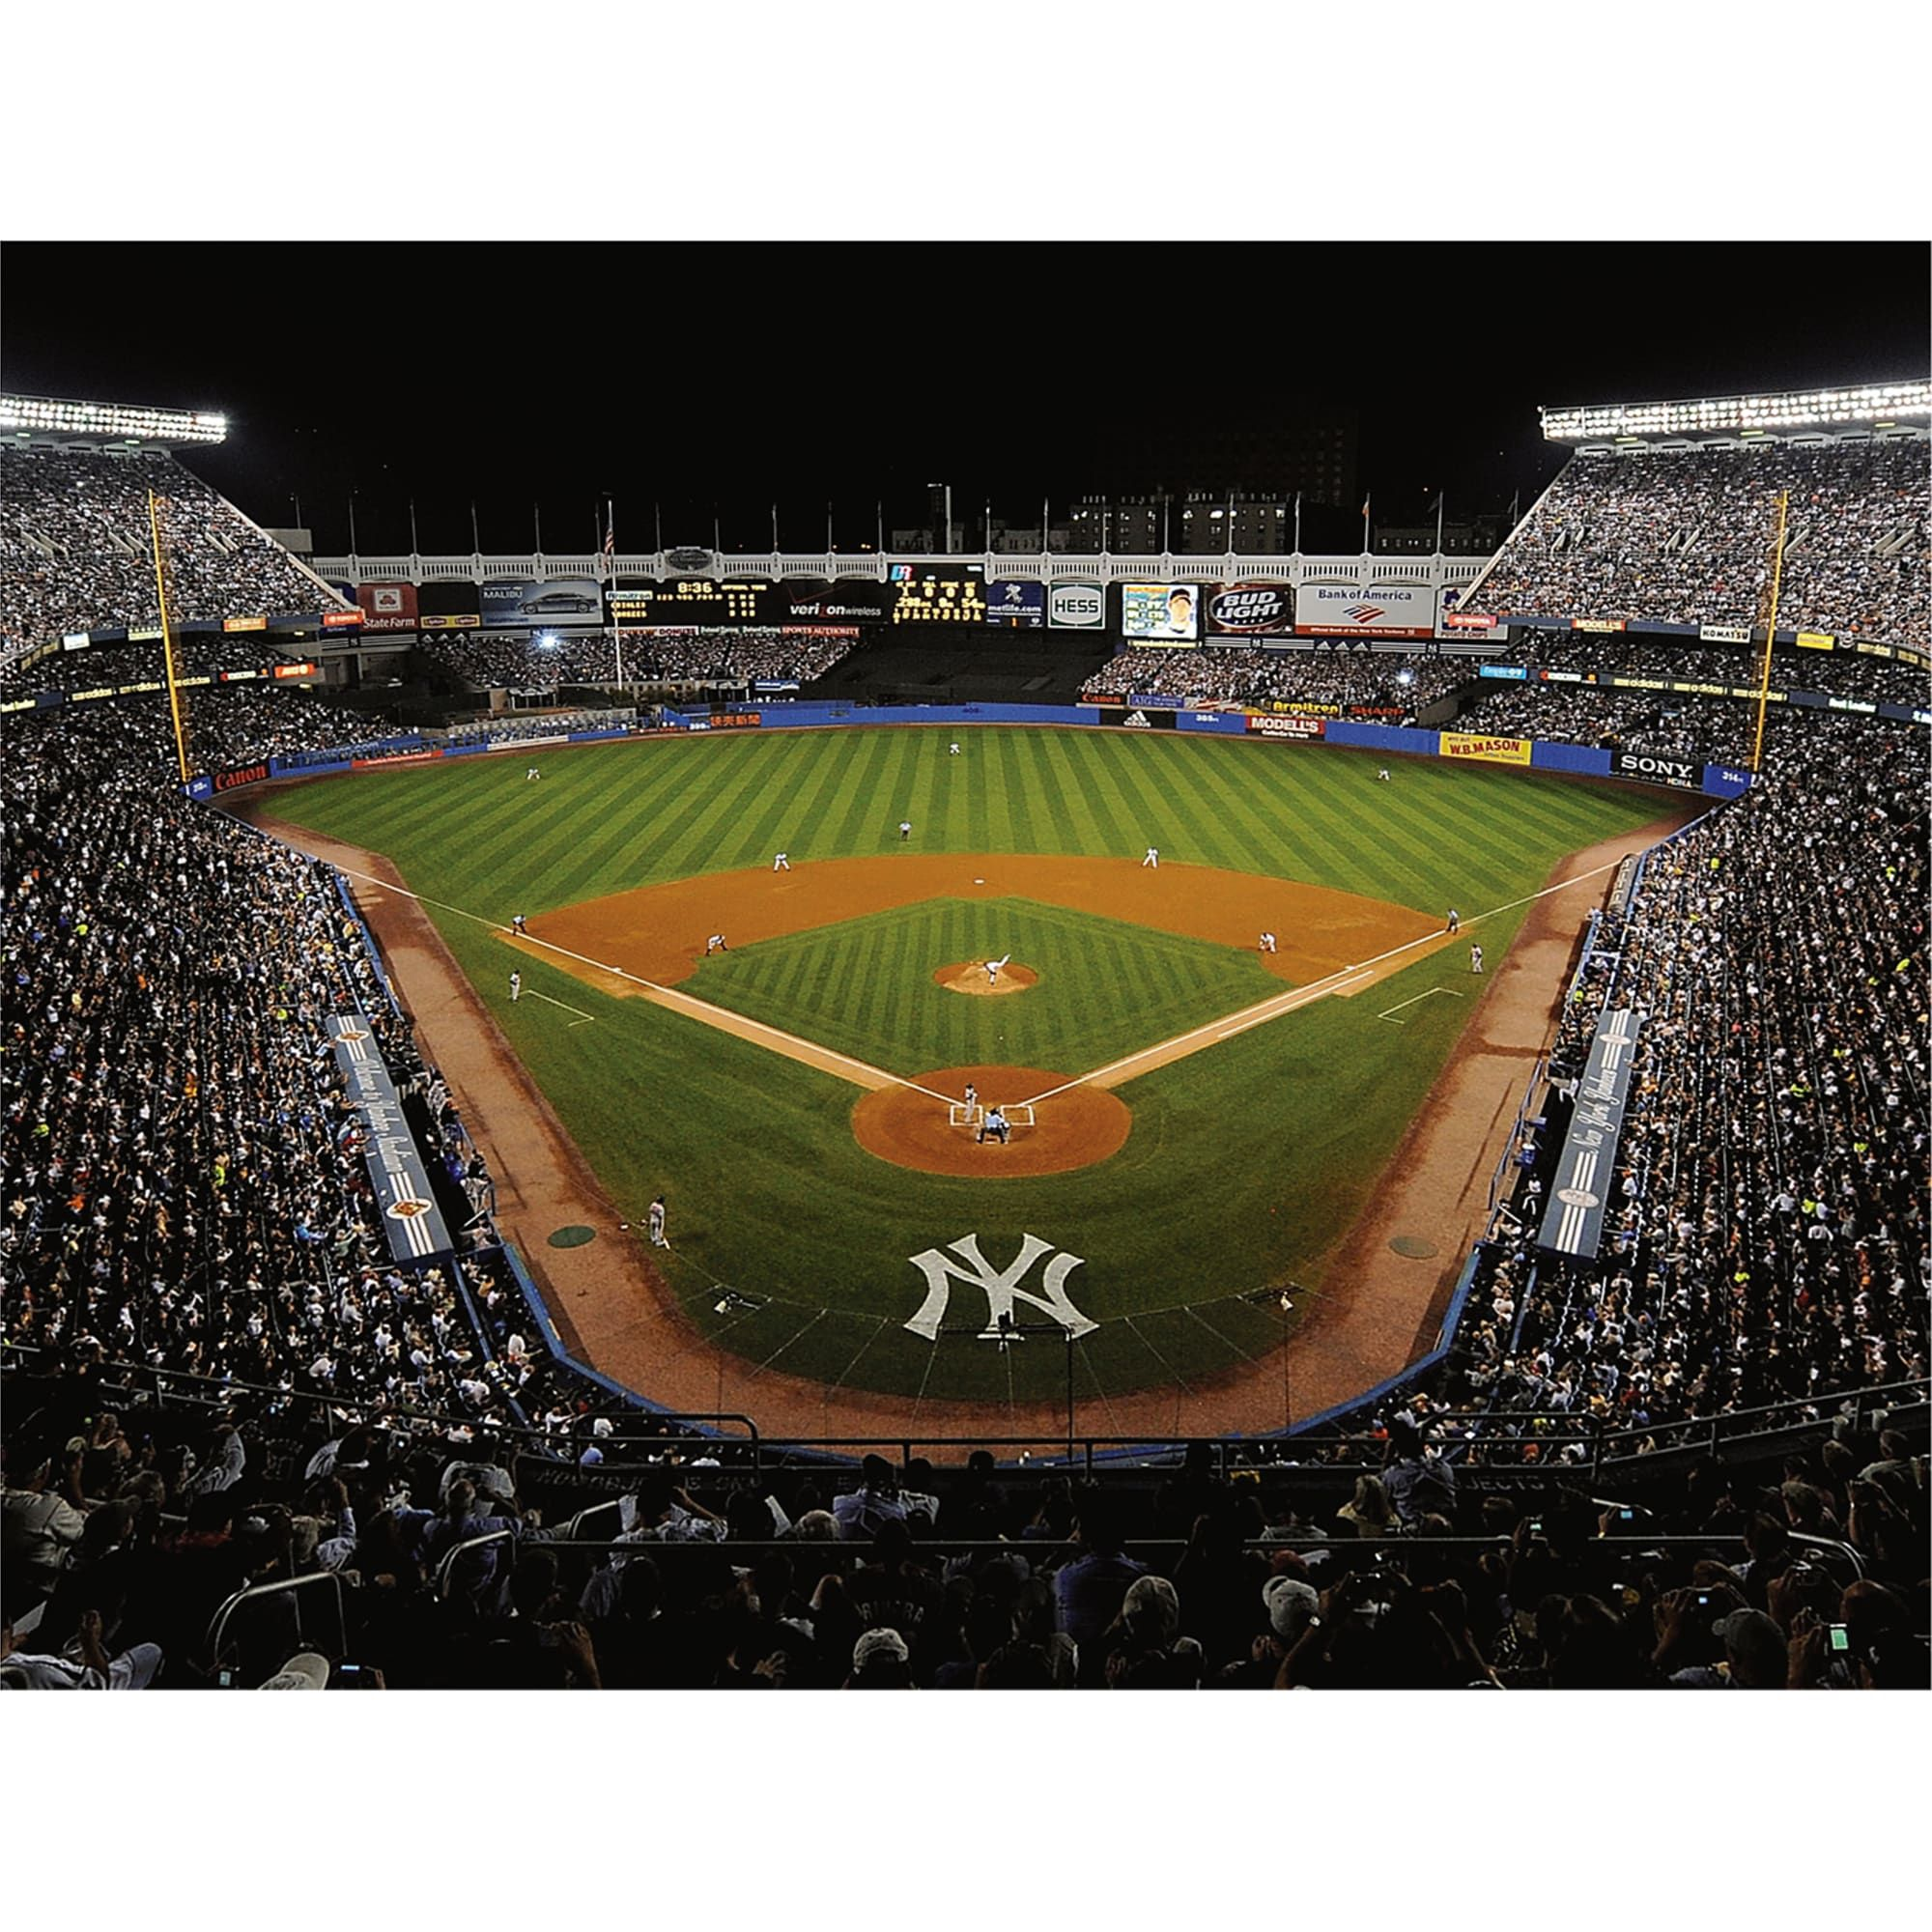 New York Yankees Old Yankee Stadium Behind Home Plate Mural Giant Officially Licensed Mlb Re New York Yankees New York Yankees Game New York Yankees Stadium